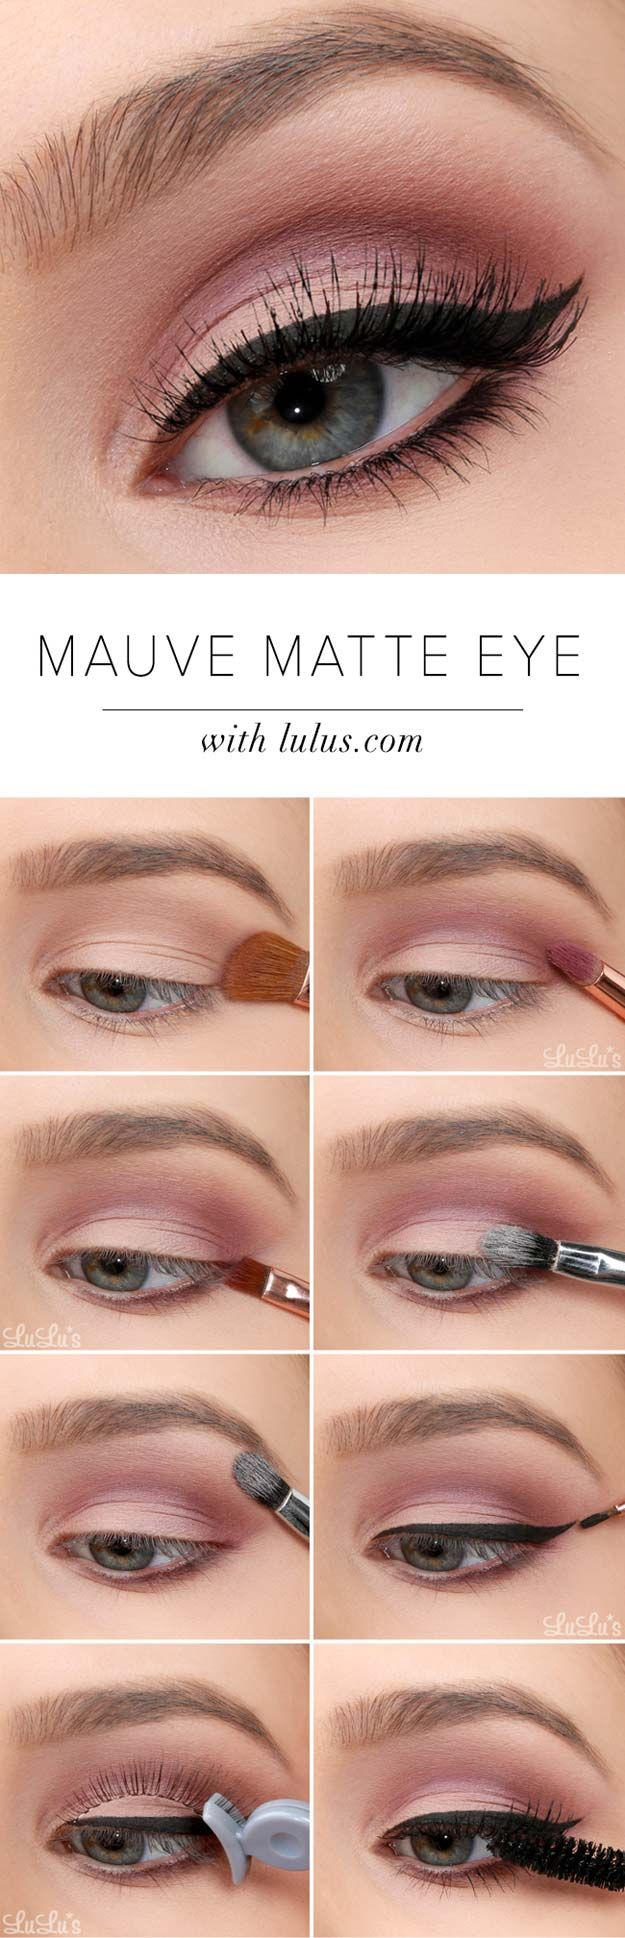 34 sexy eye makeup tutorials linda hallberg eye tutorial and sexy eye makeup tutorials mauve matte eye tutorial easy guides on how to do baditri Images